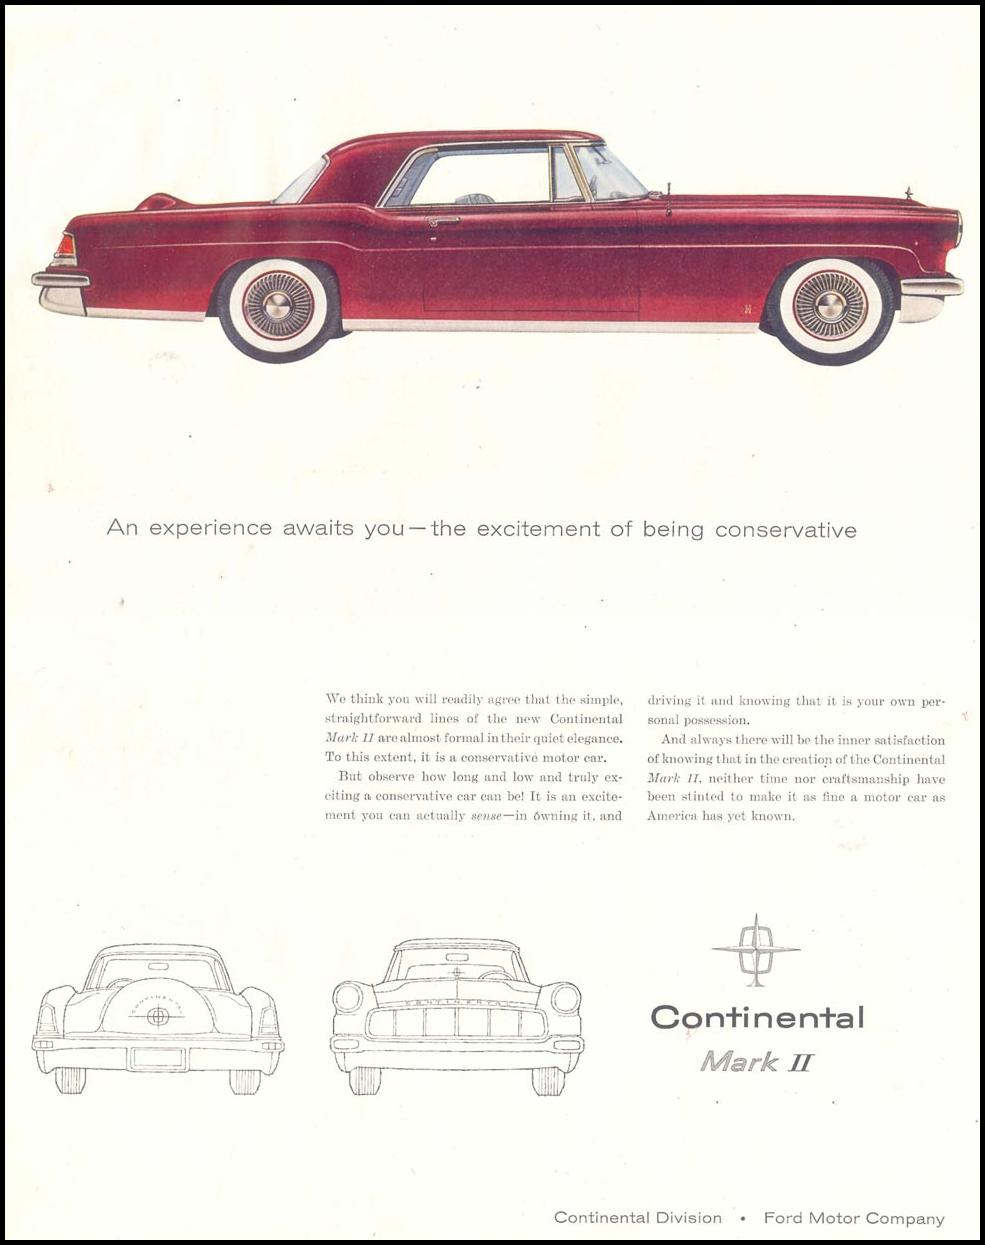 CONTINENTAL AUTOMOBILES SATURDAY EVENING POST 12/10/1955 p. 53